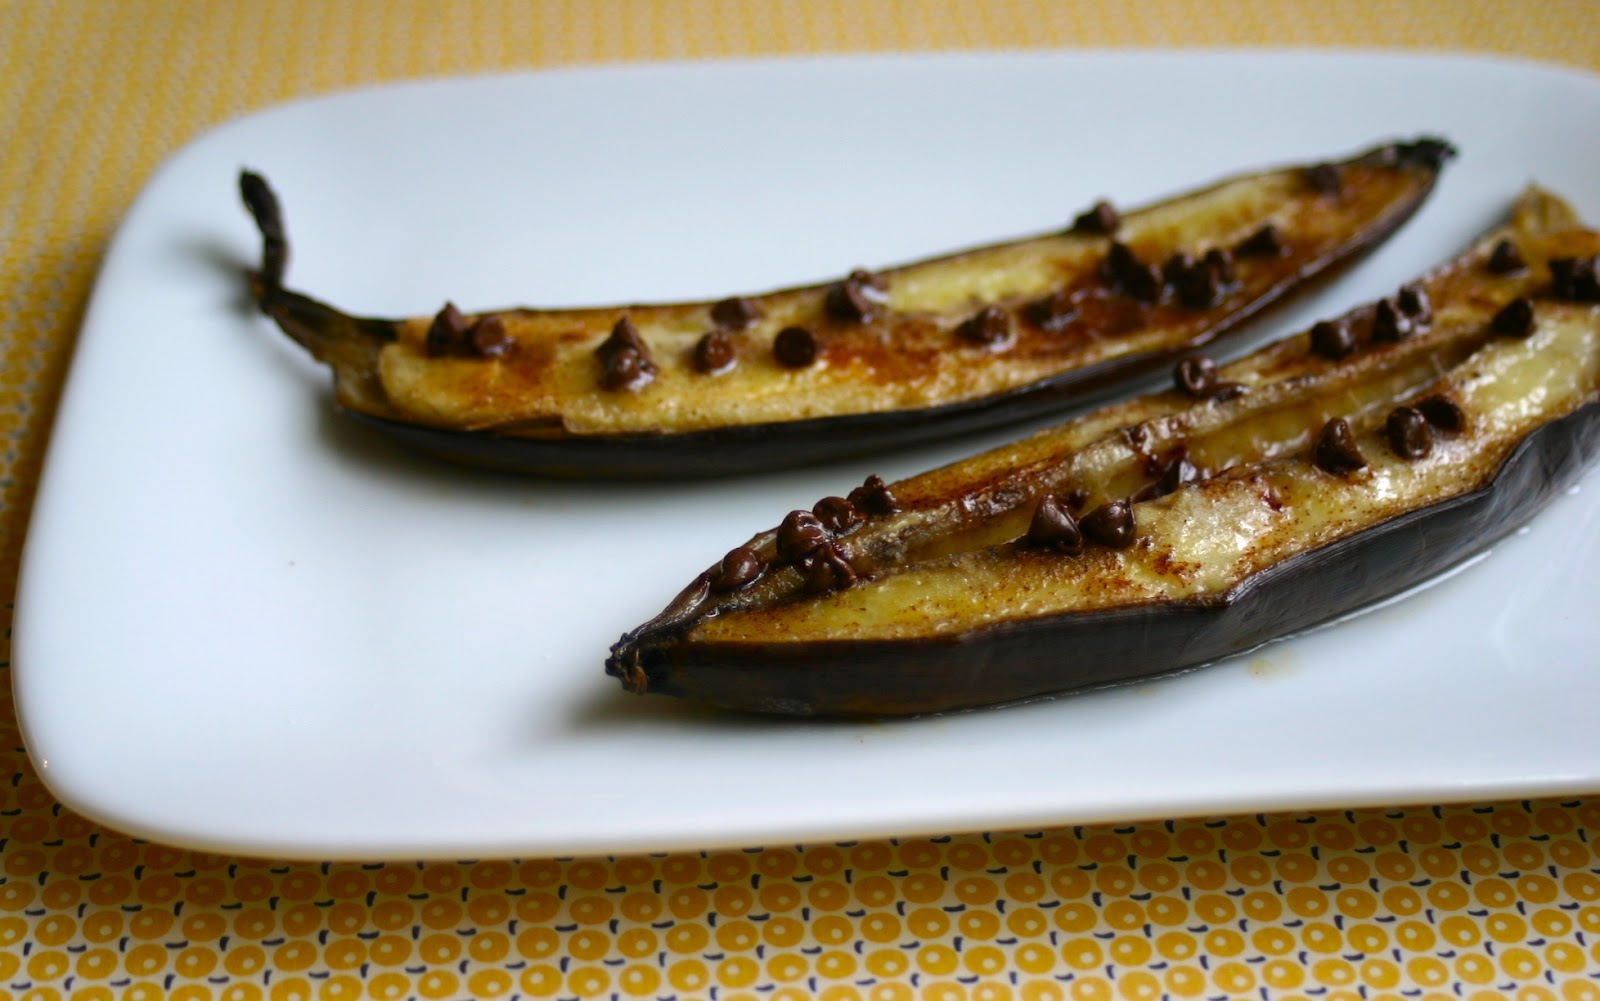 oven roasted bananas traditional oven roasted banana 1 banana per